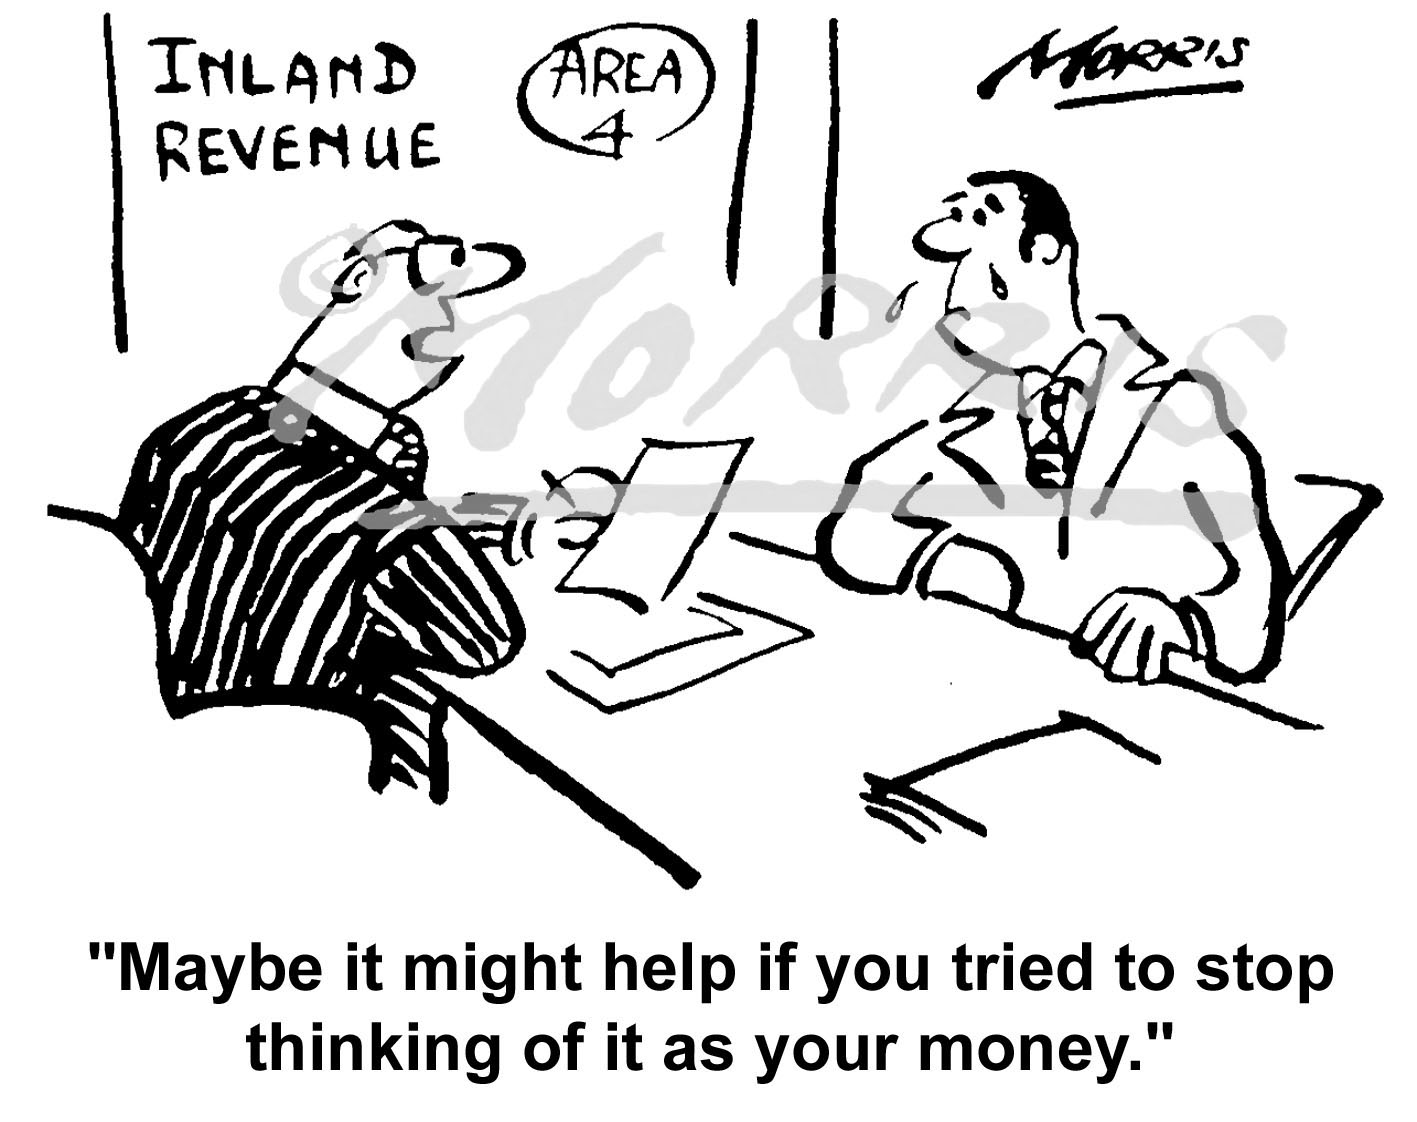 HMRC cartoon Ref: 0207bw